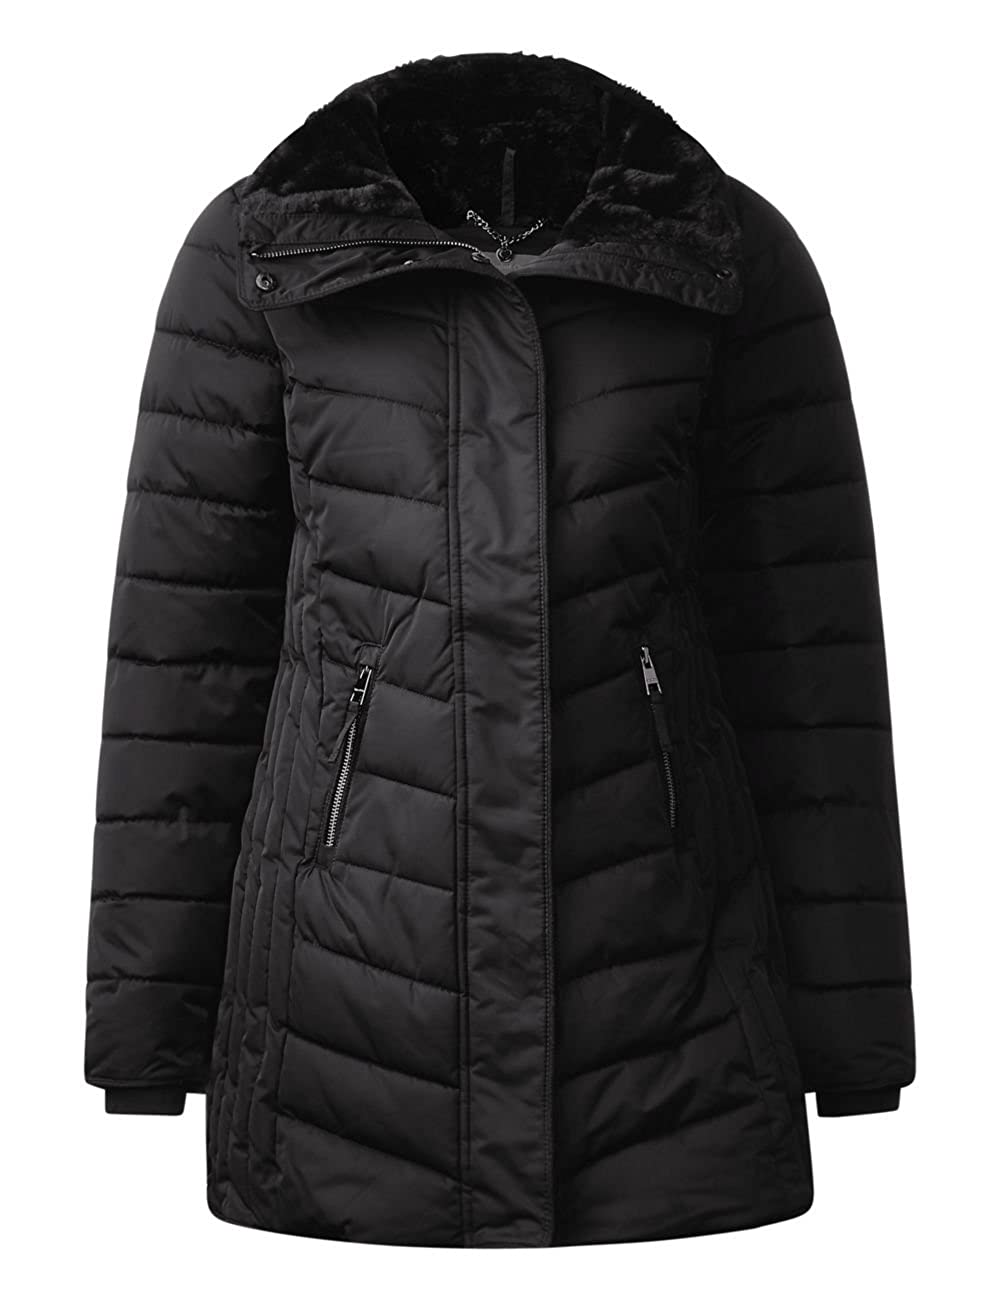 Giubbotto Donna Padded Amazon it One Ojp Coat Street Shaped qxwXUHanR